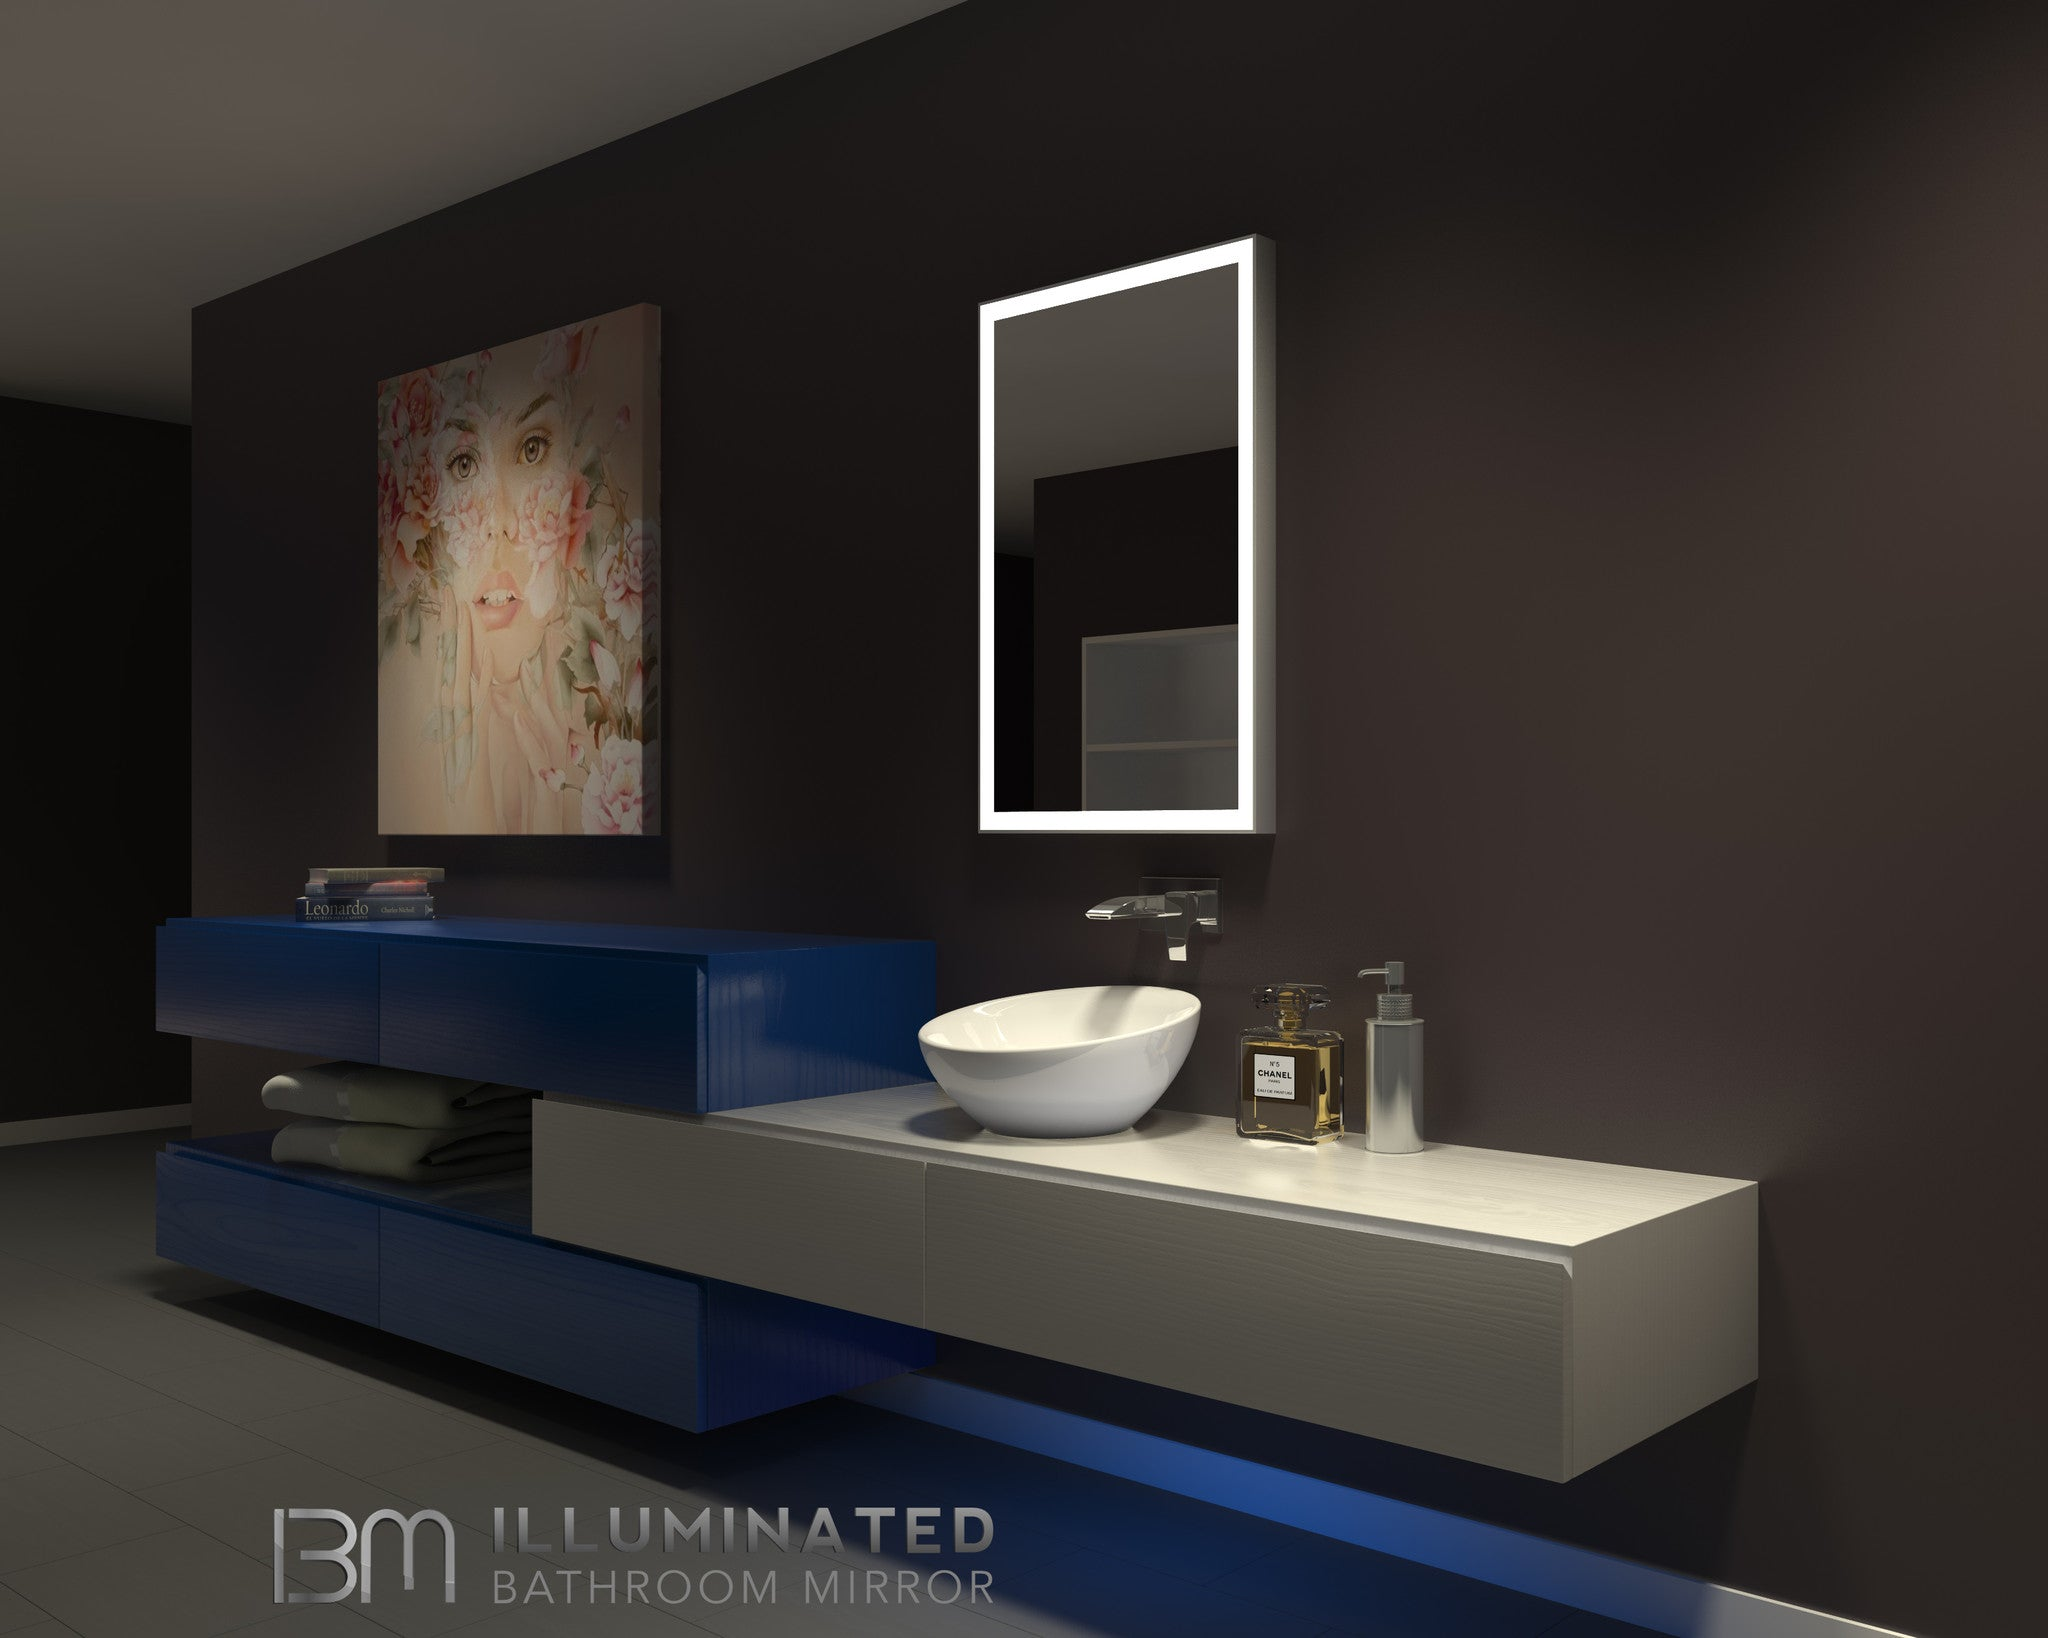 Lighted Bathroom Wall Mirror modern lighted bathroom mirror & backlit bathroom mirror – ib mirror